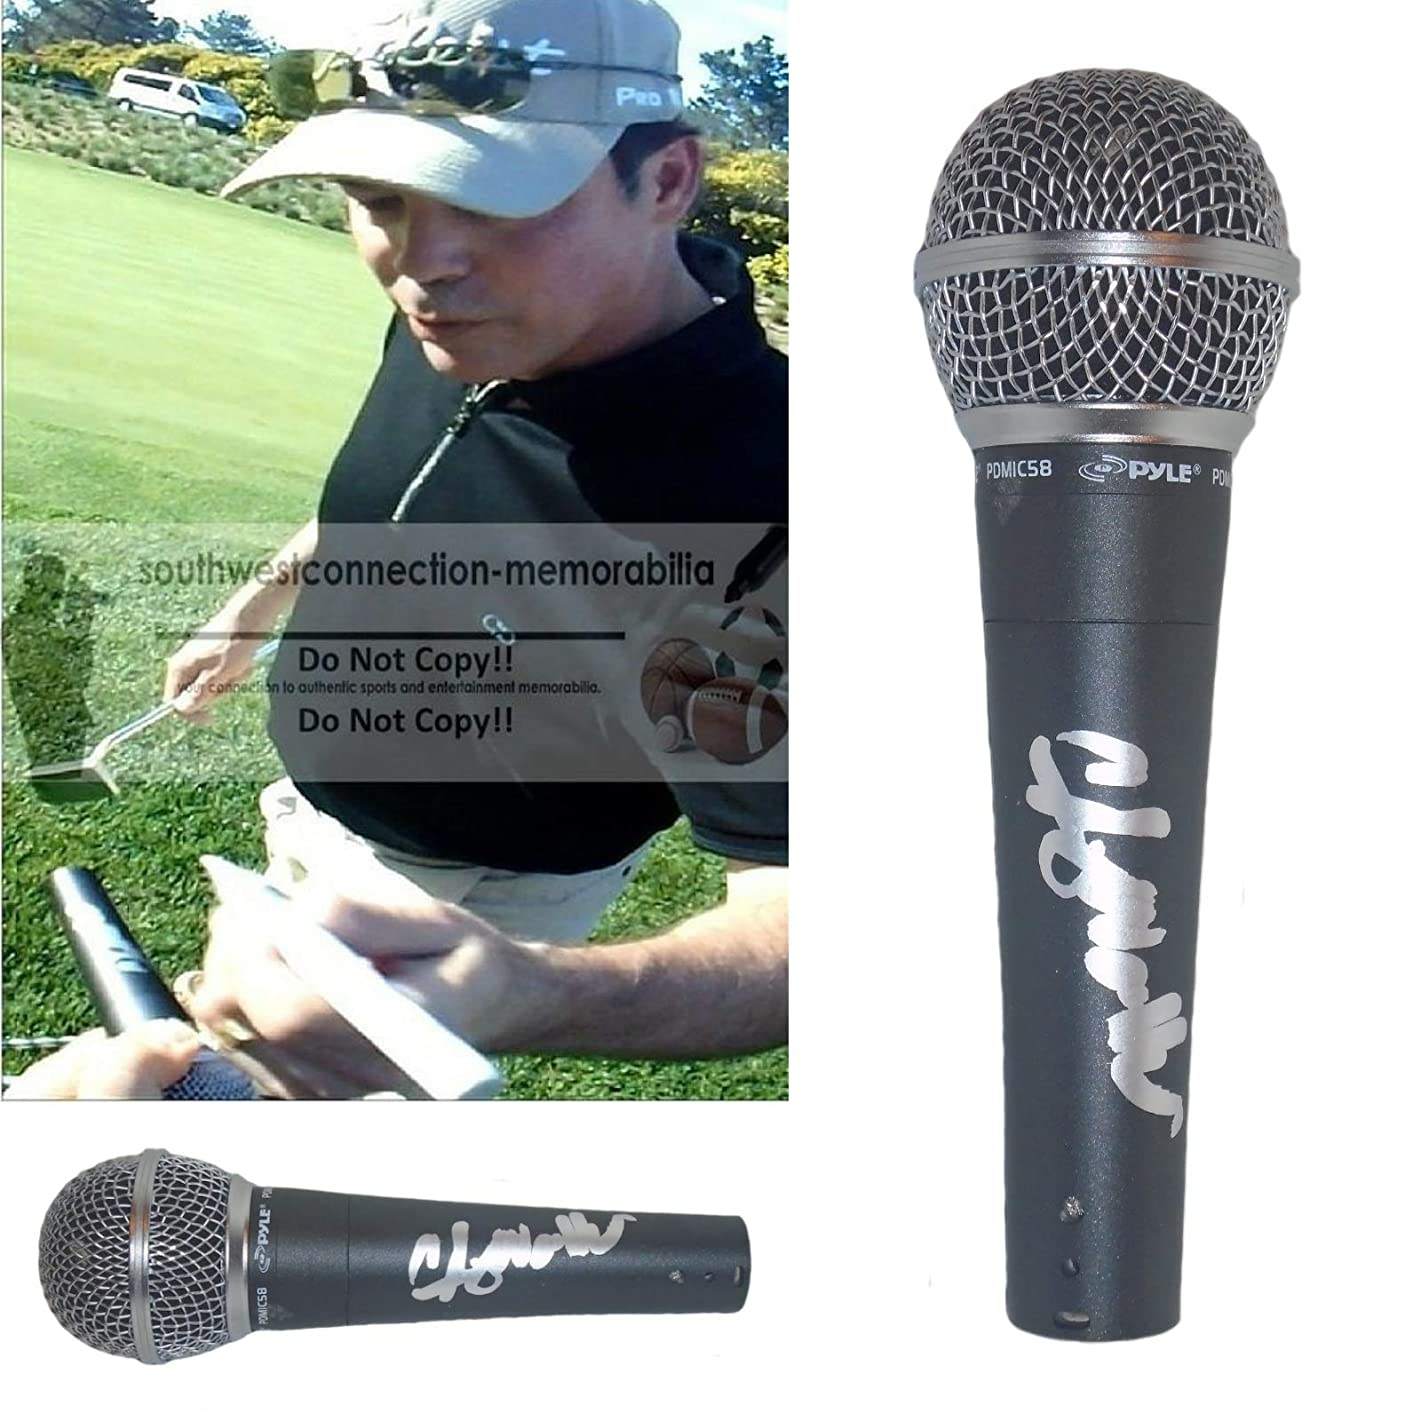 Country Music Star Clay Walker Signed Hand Autographed Microphone with Exact Proof Photo of Clay Signing the Mic, Hypnotize The Moon, Say No More, A Few Questions, Fail, COA